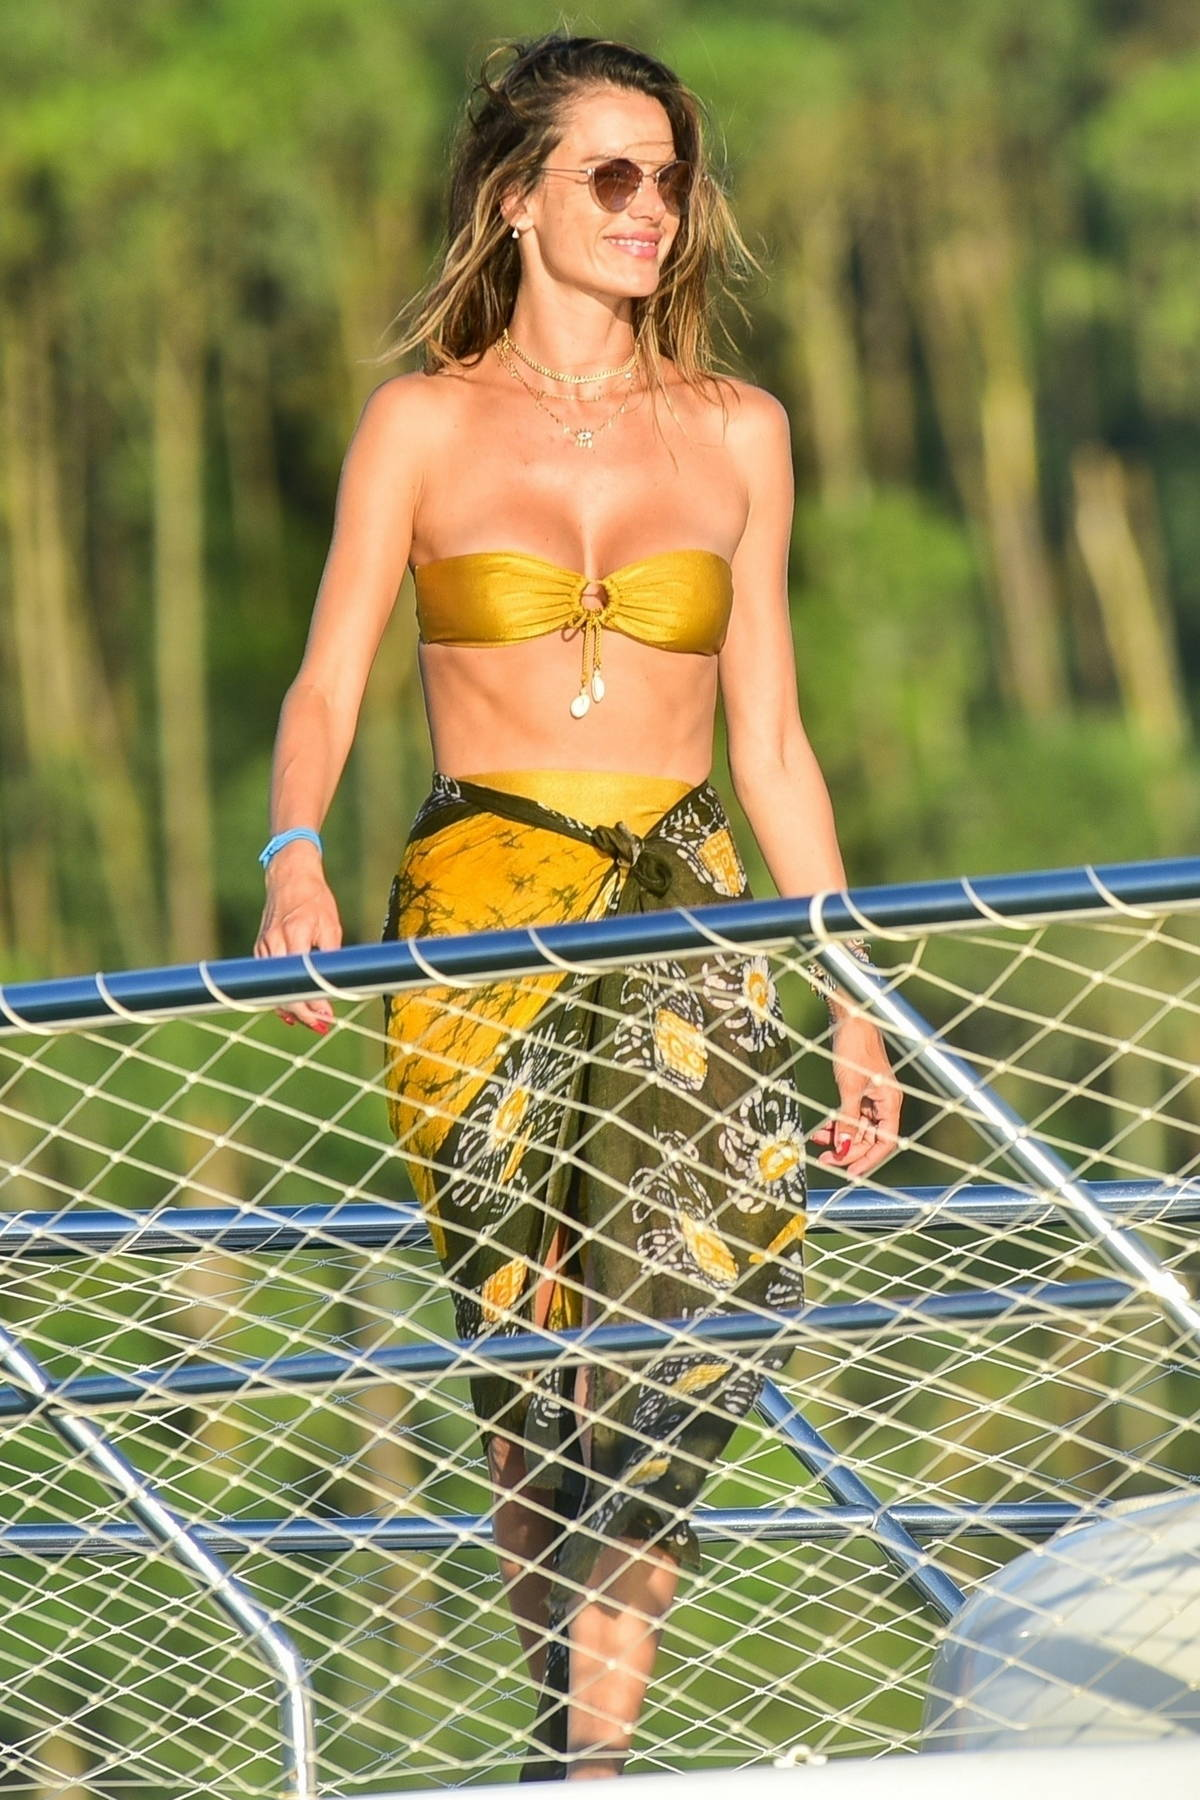 Alessandra Ambrosio looks sensational in a gold bikini while enjoying a day on a luxury yacht with friends in Florianopolis, Brazil